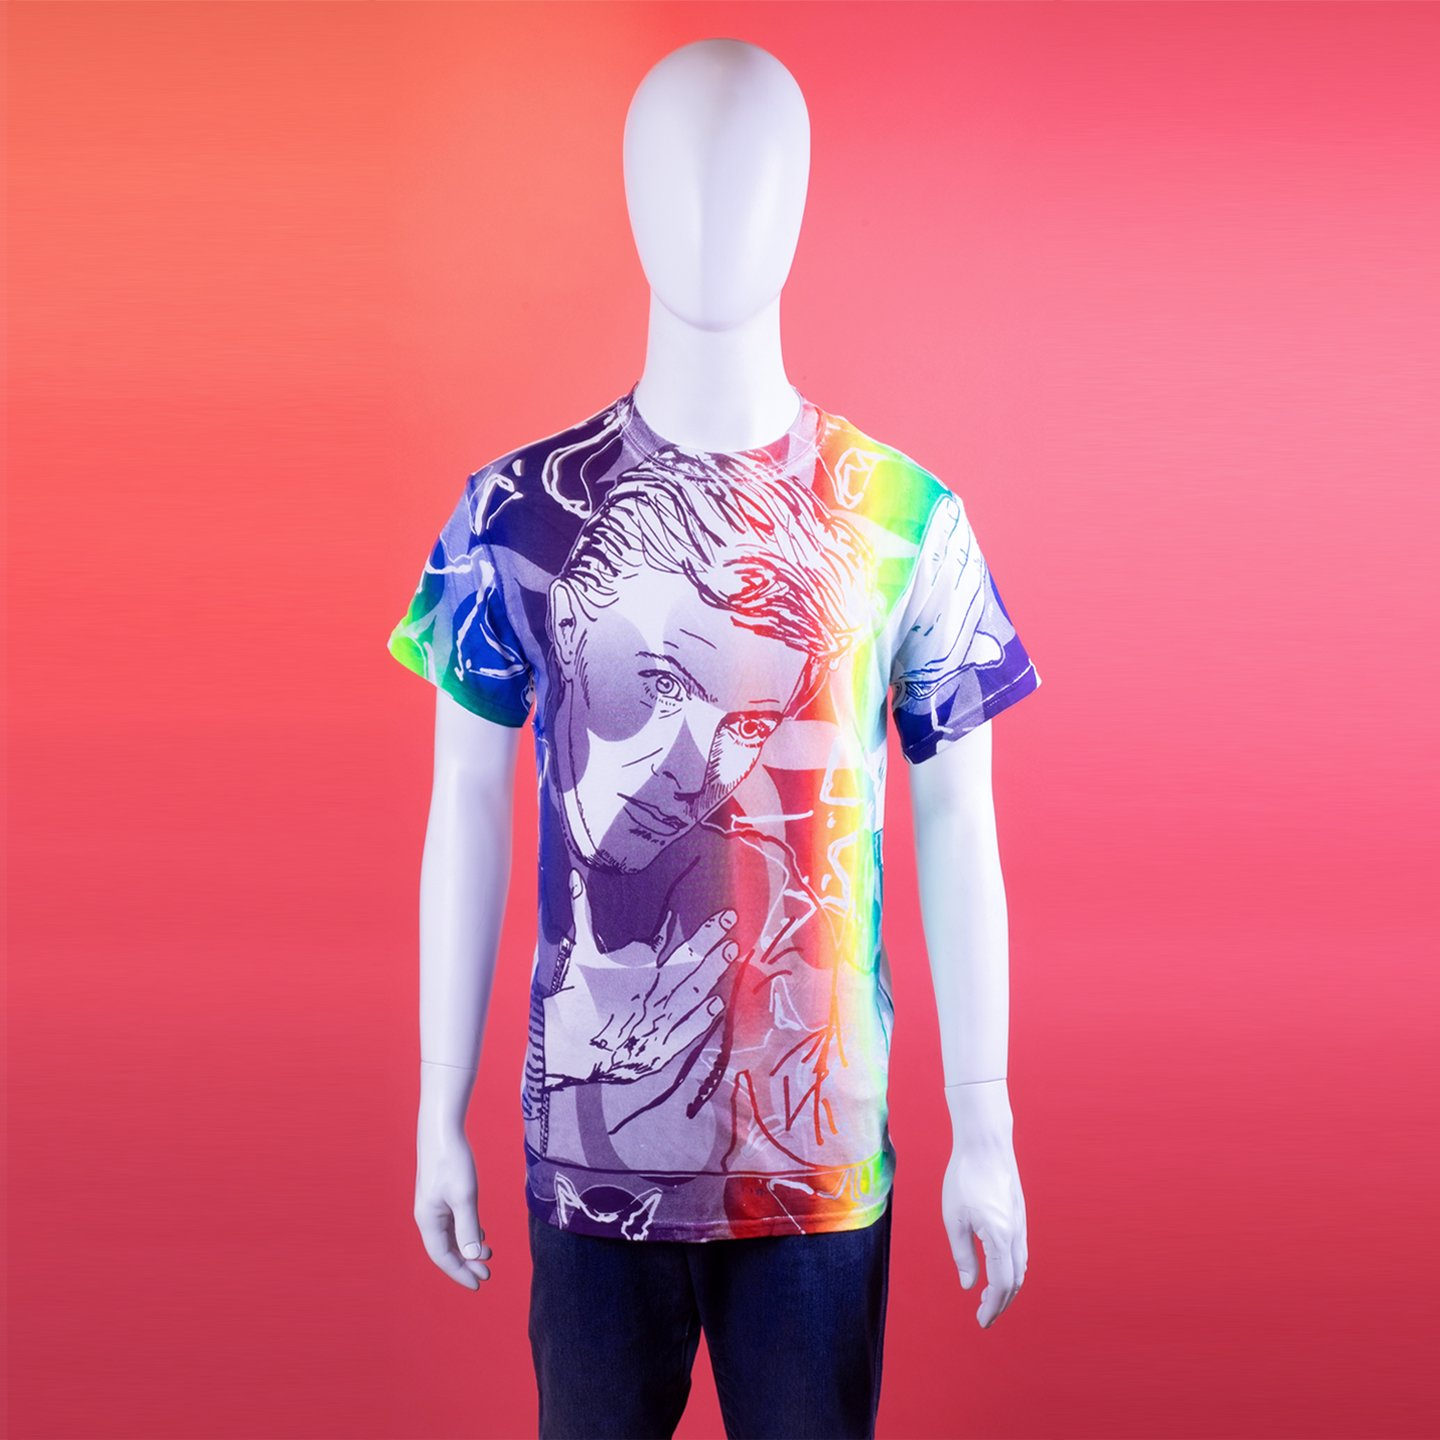 https://patriciafield.com/collections/ben-copperwheat/products/david-bowie-rainbow-ombre-tee?variant=12172570853478